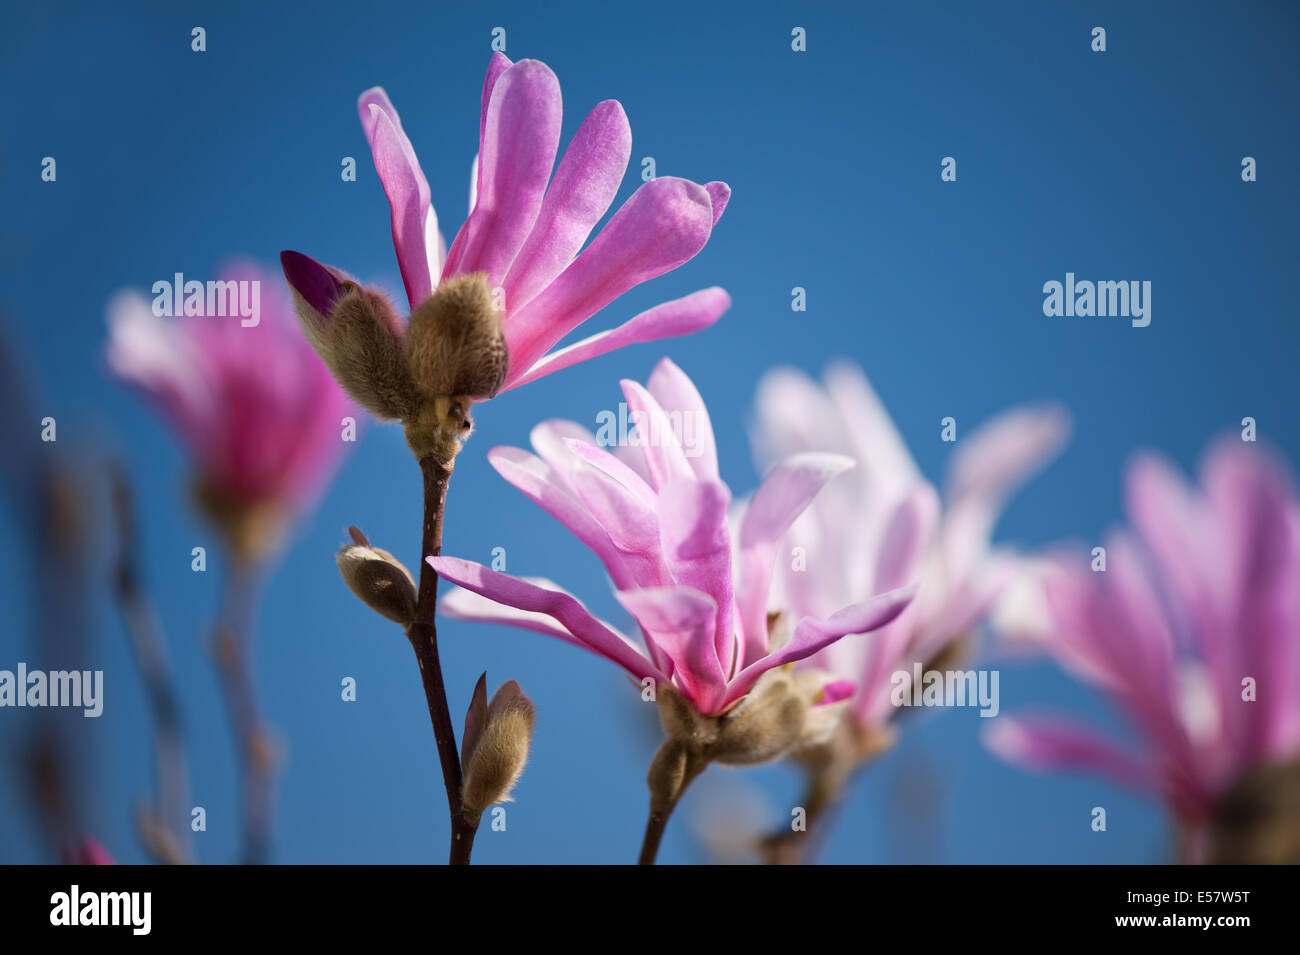 Magnolias Another Sign Of Early Spring >> Vibrant pink Magnolia flowers in early spring Stock Photo, Royalty Free Image: 72088180 - Alamy